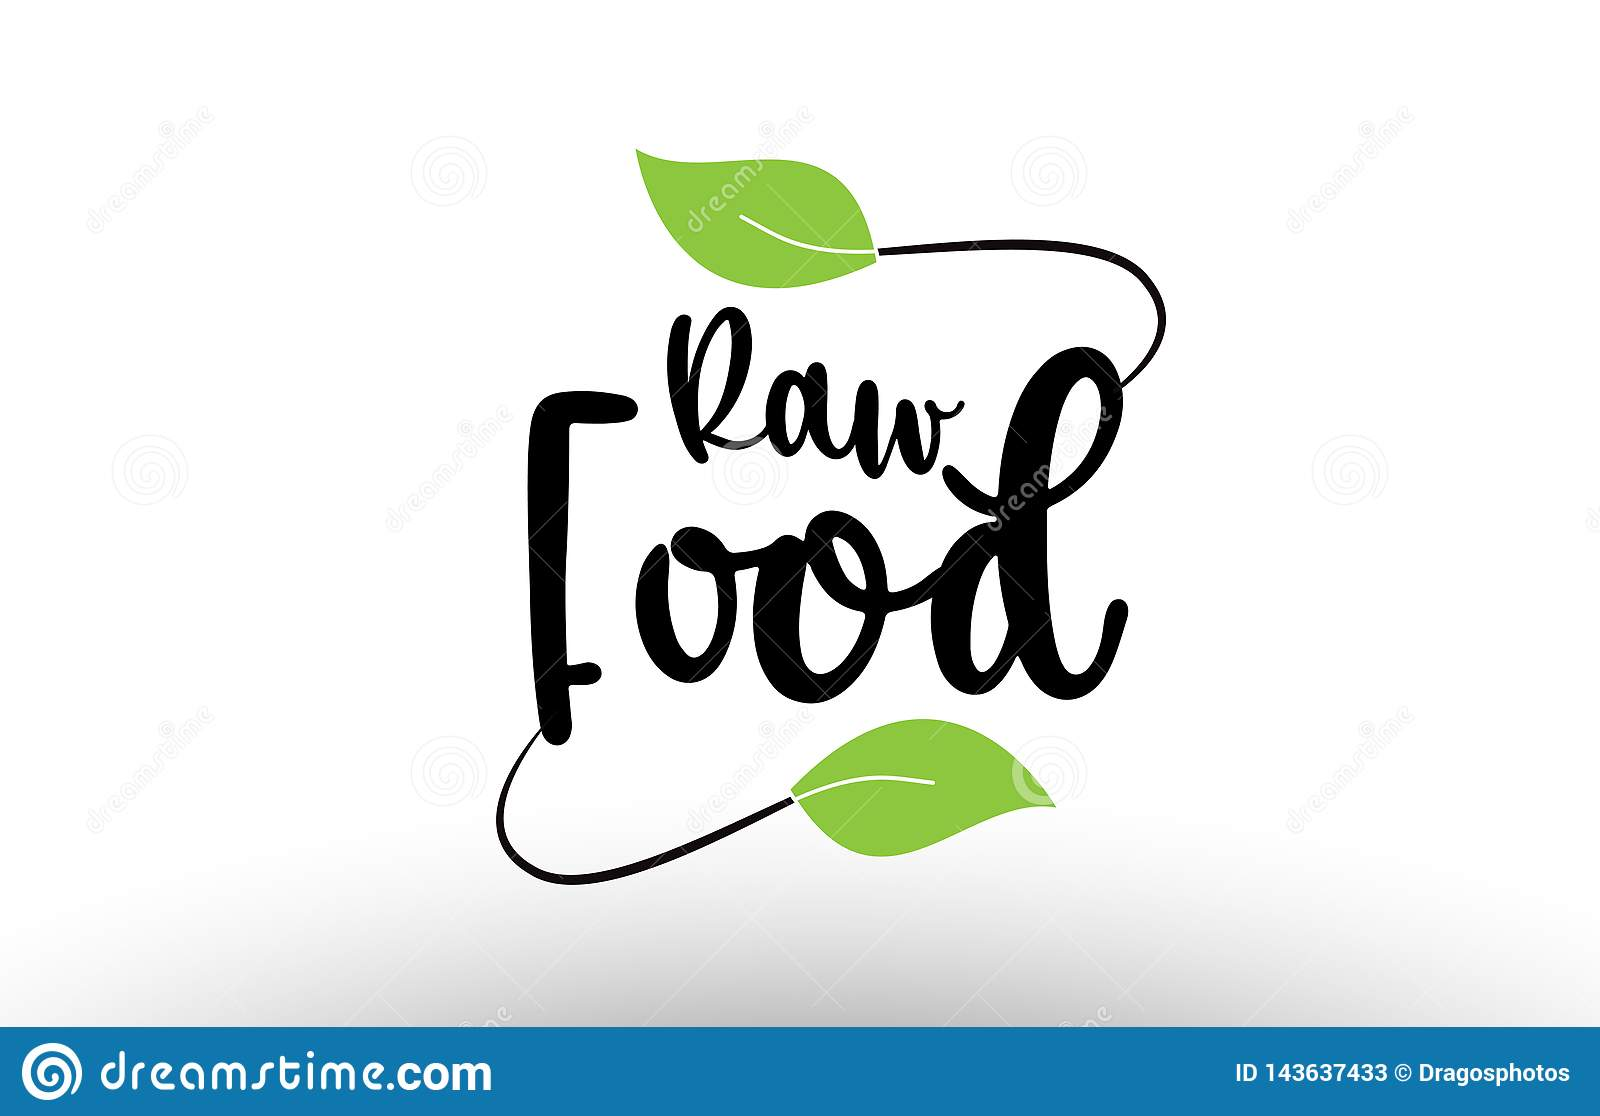 Raw Food Word Text With Green Leaf Logo Icon Design Stock ...